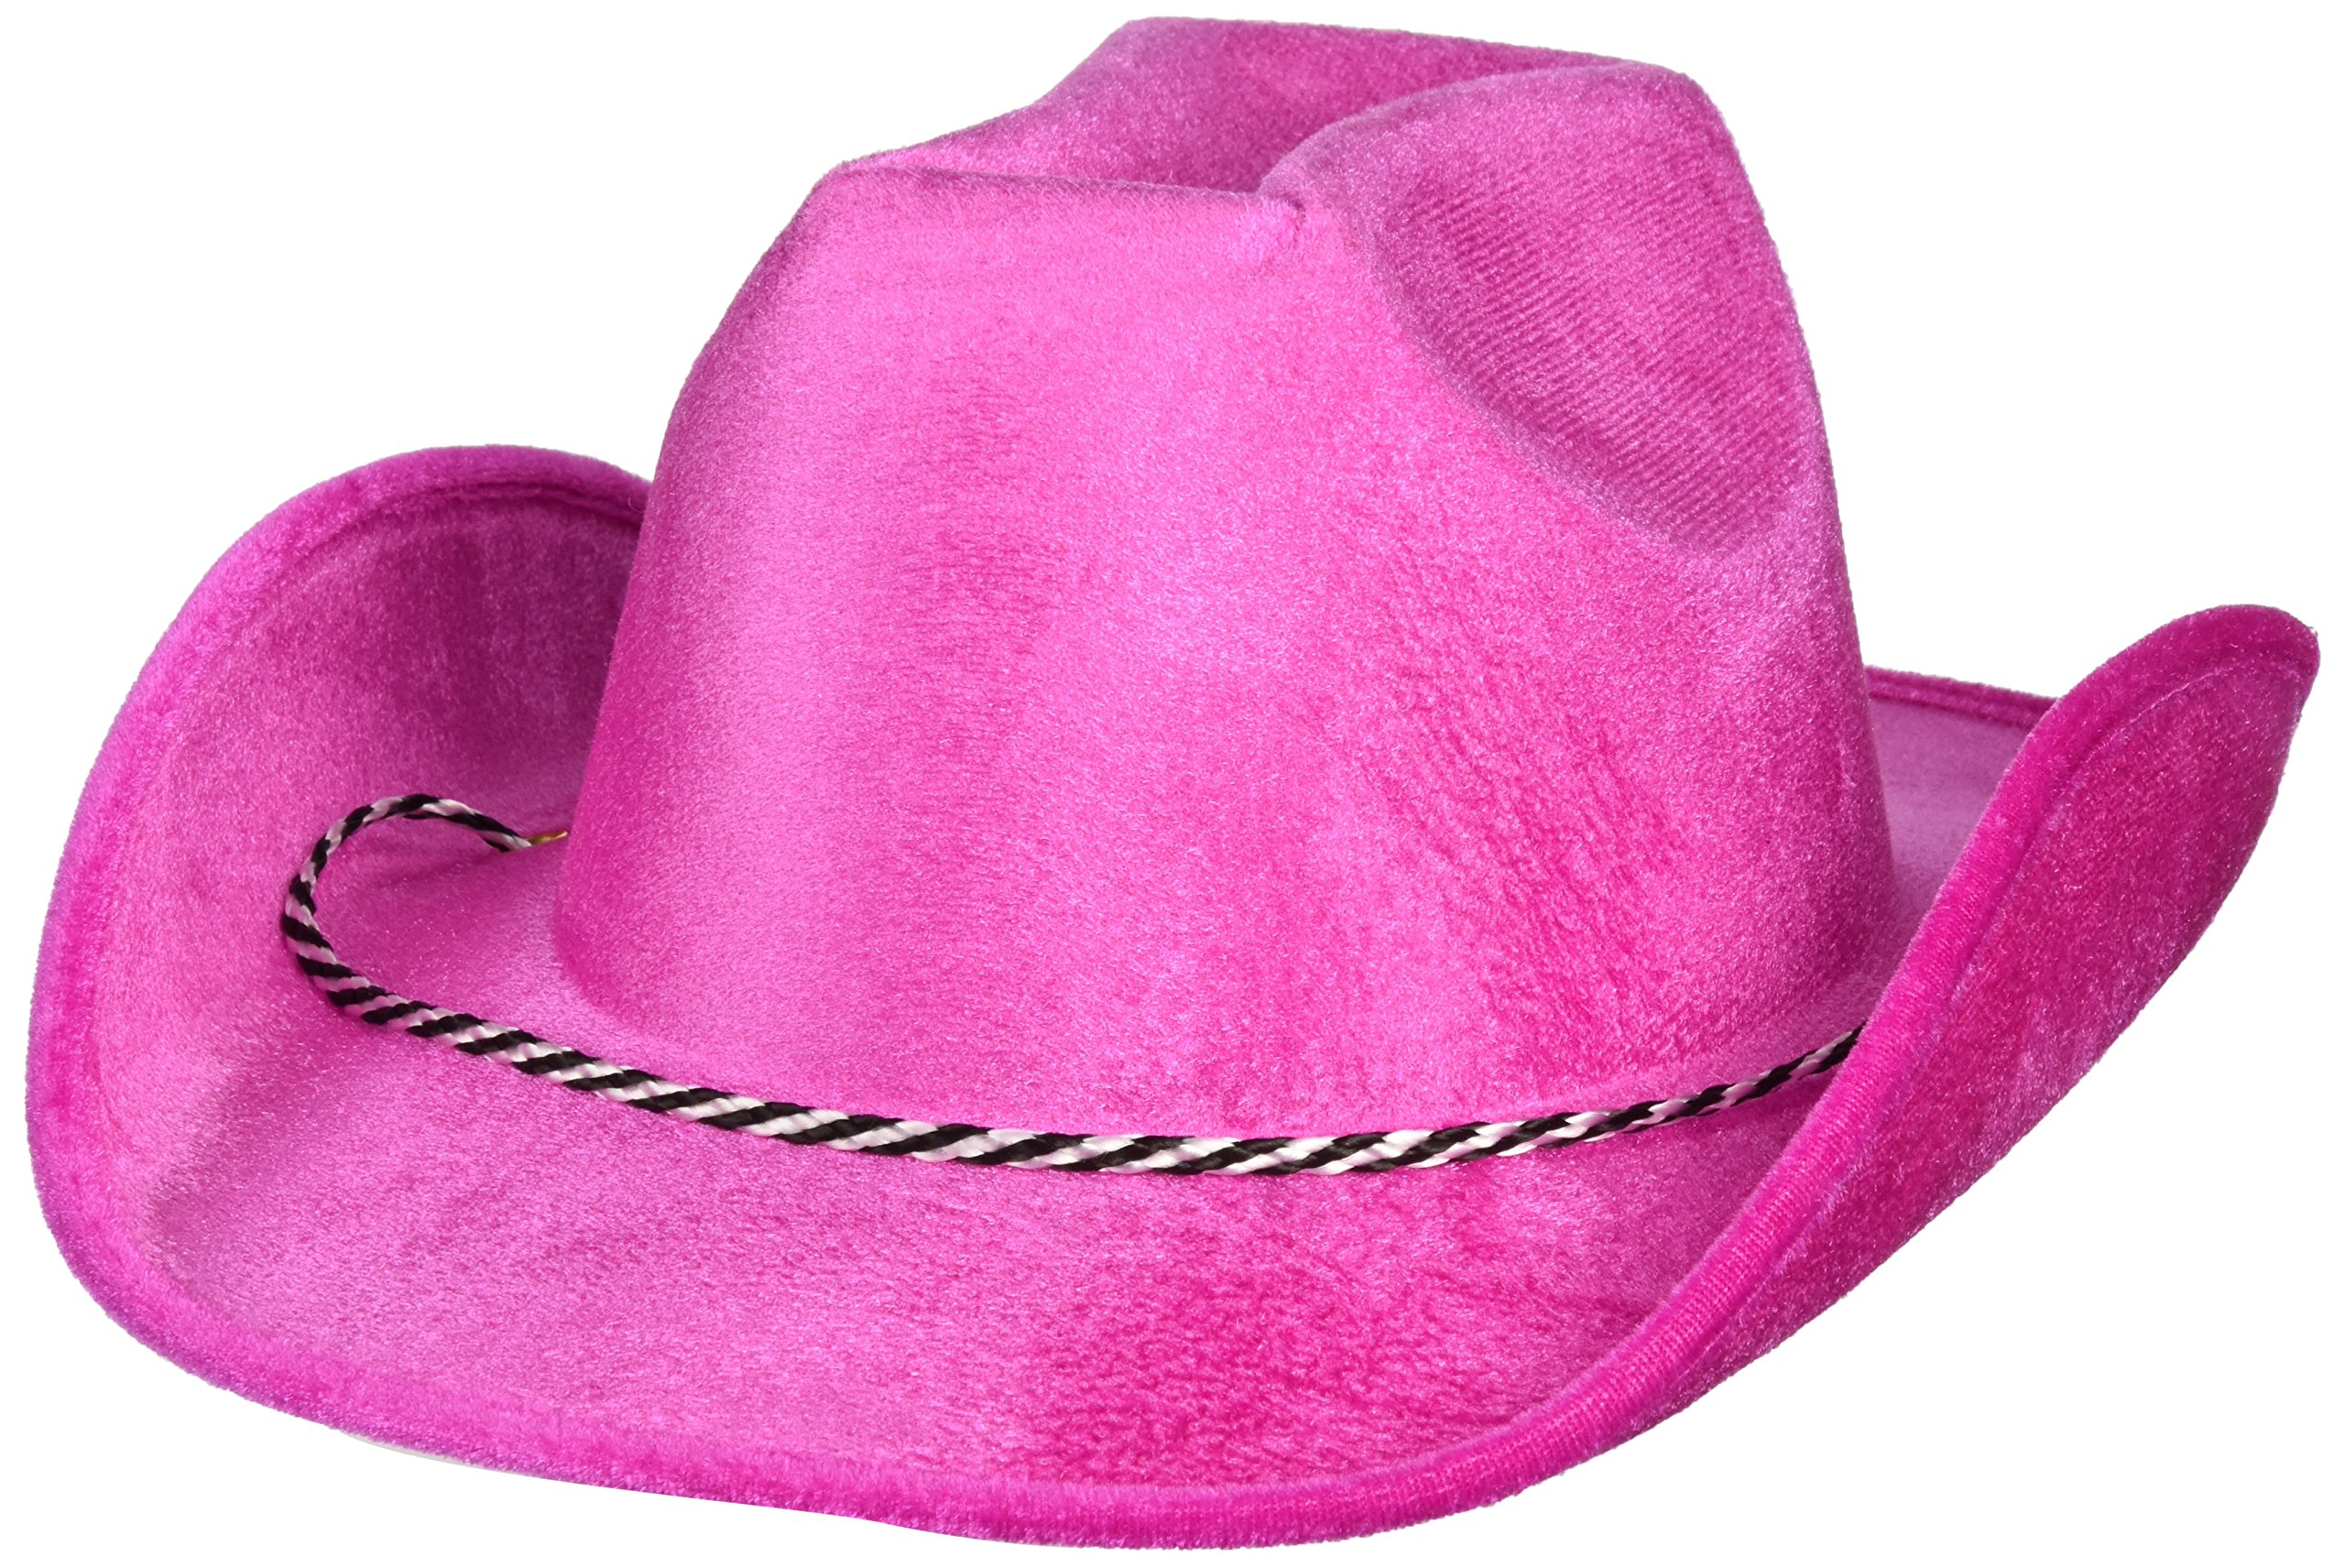 Amscan Pink Velour Cowboy Hats, Party Accessory, 6 Ct.